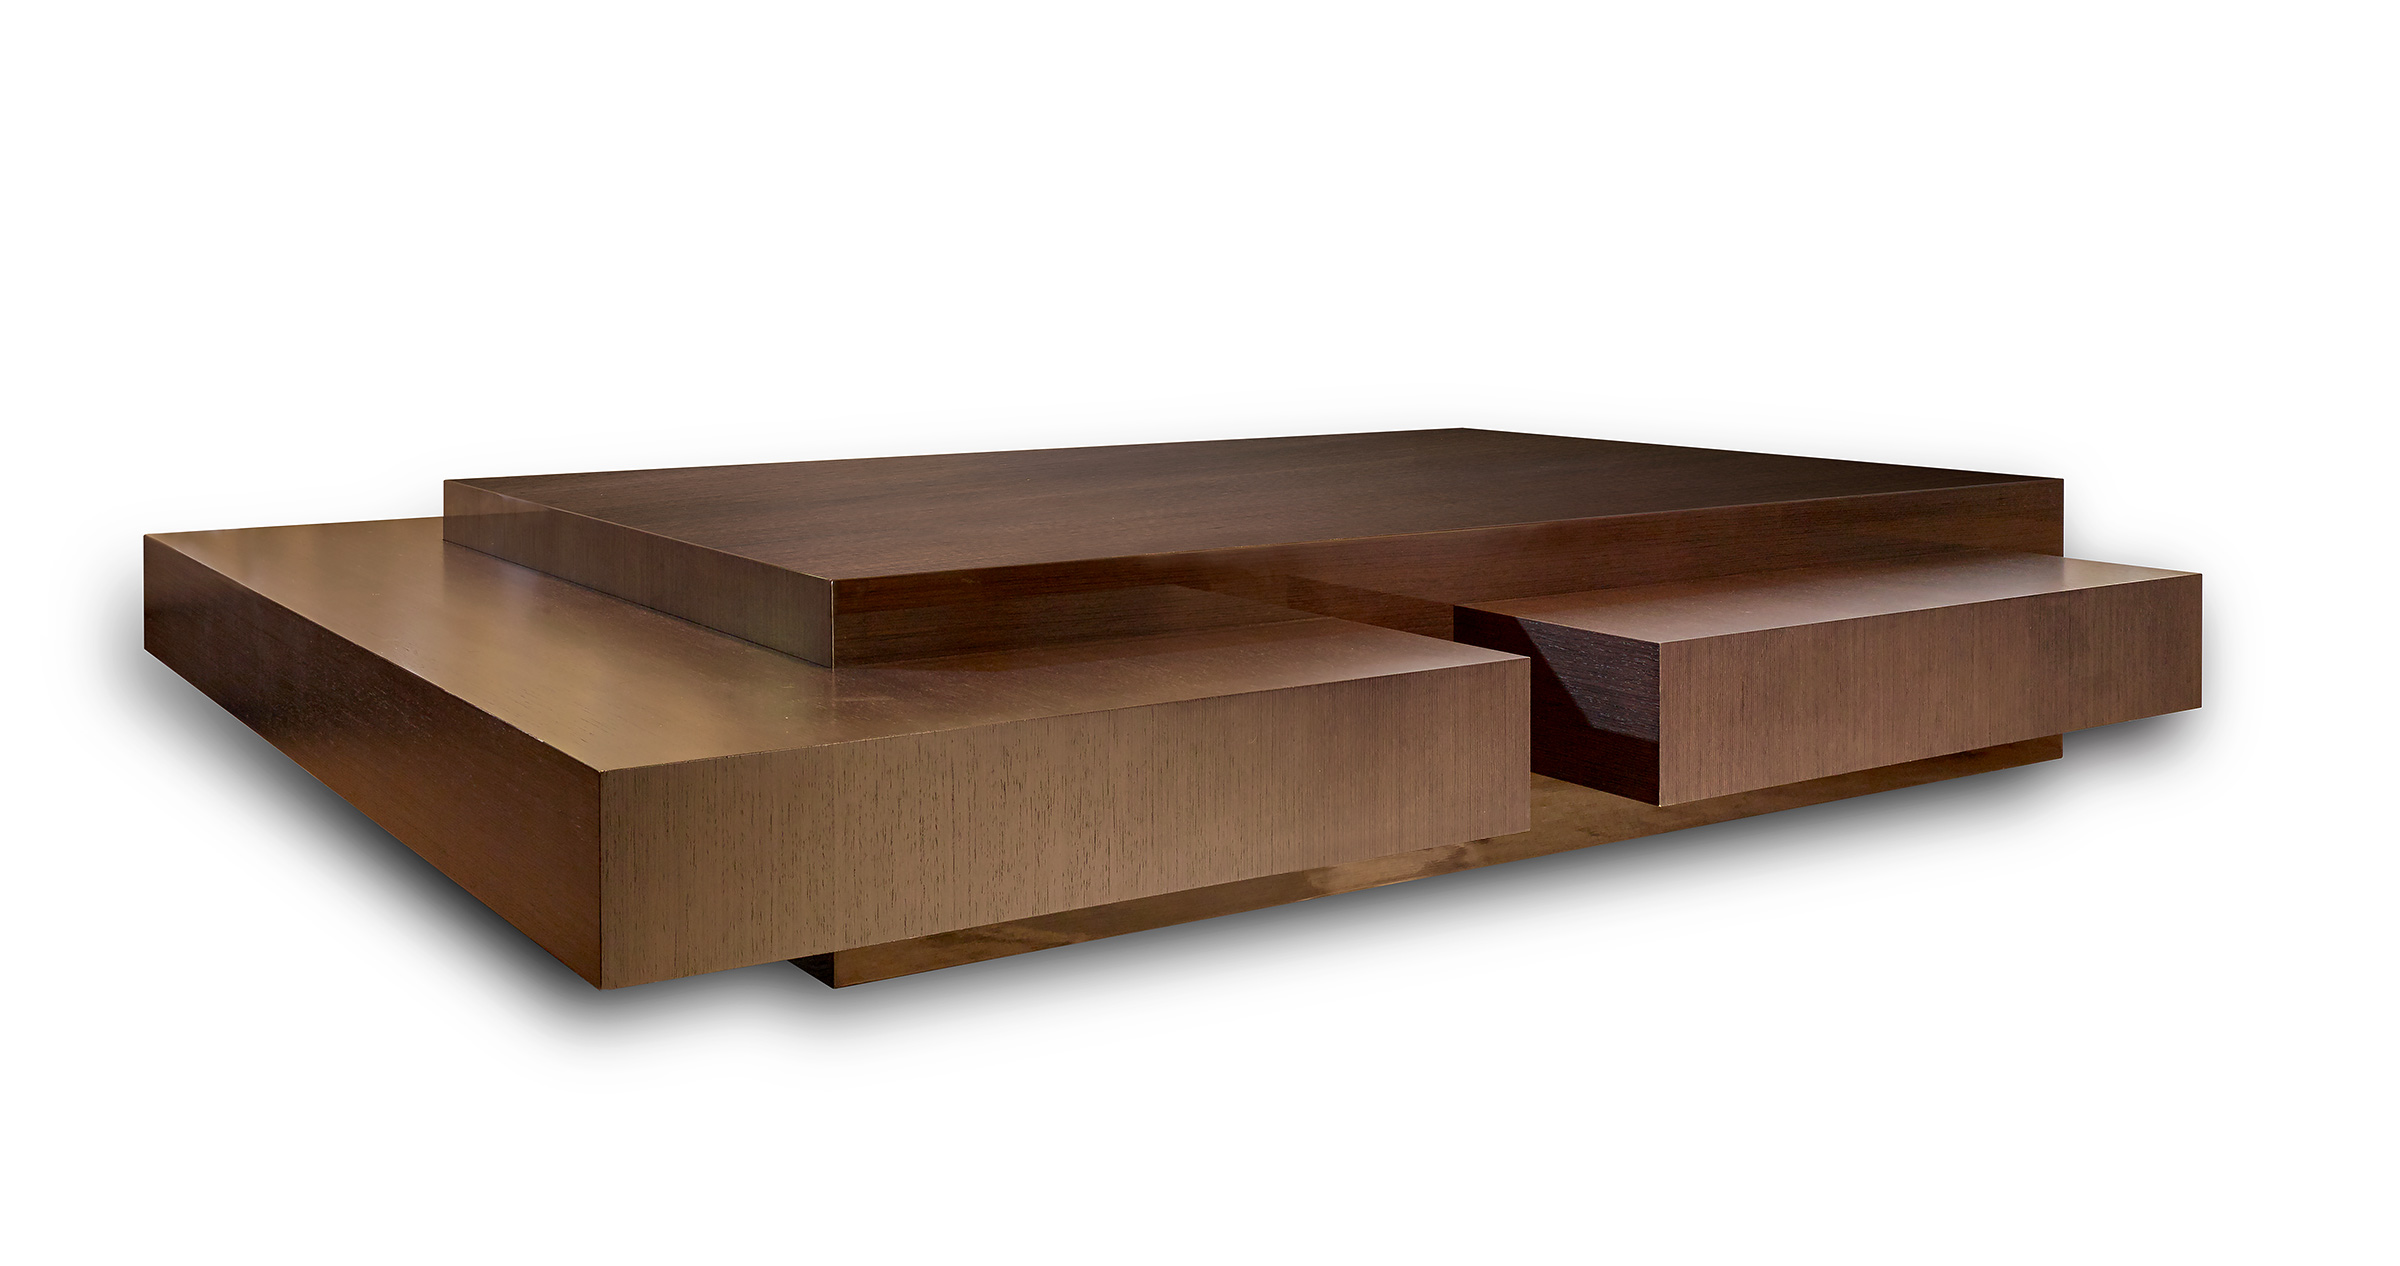 B-and-G-Design-Custom-Furniture-Coffee-Table